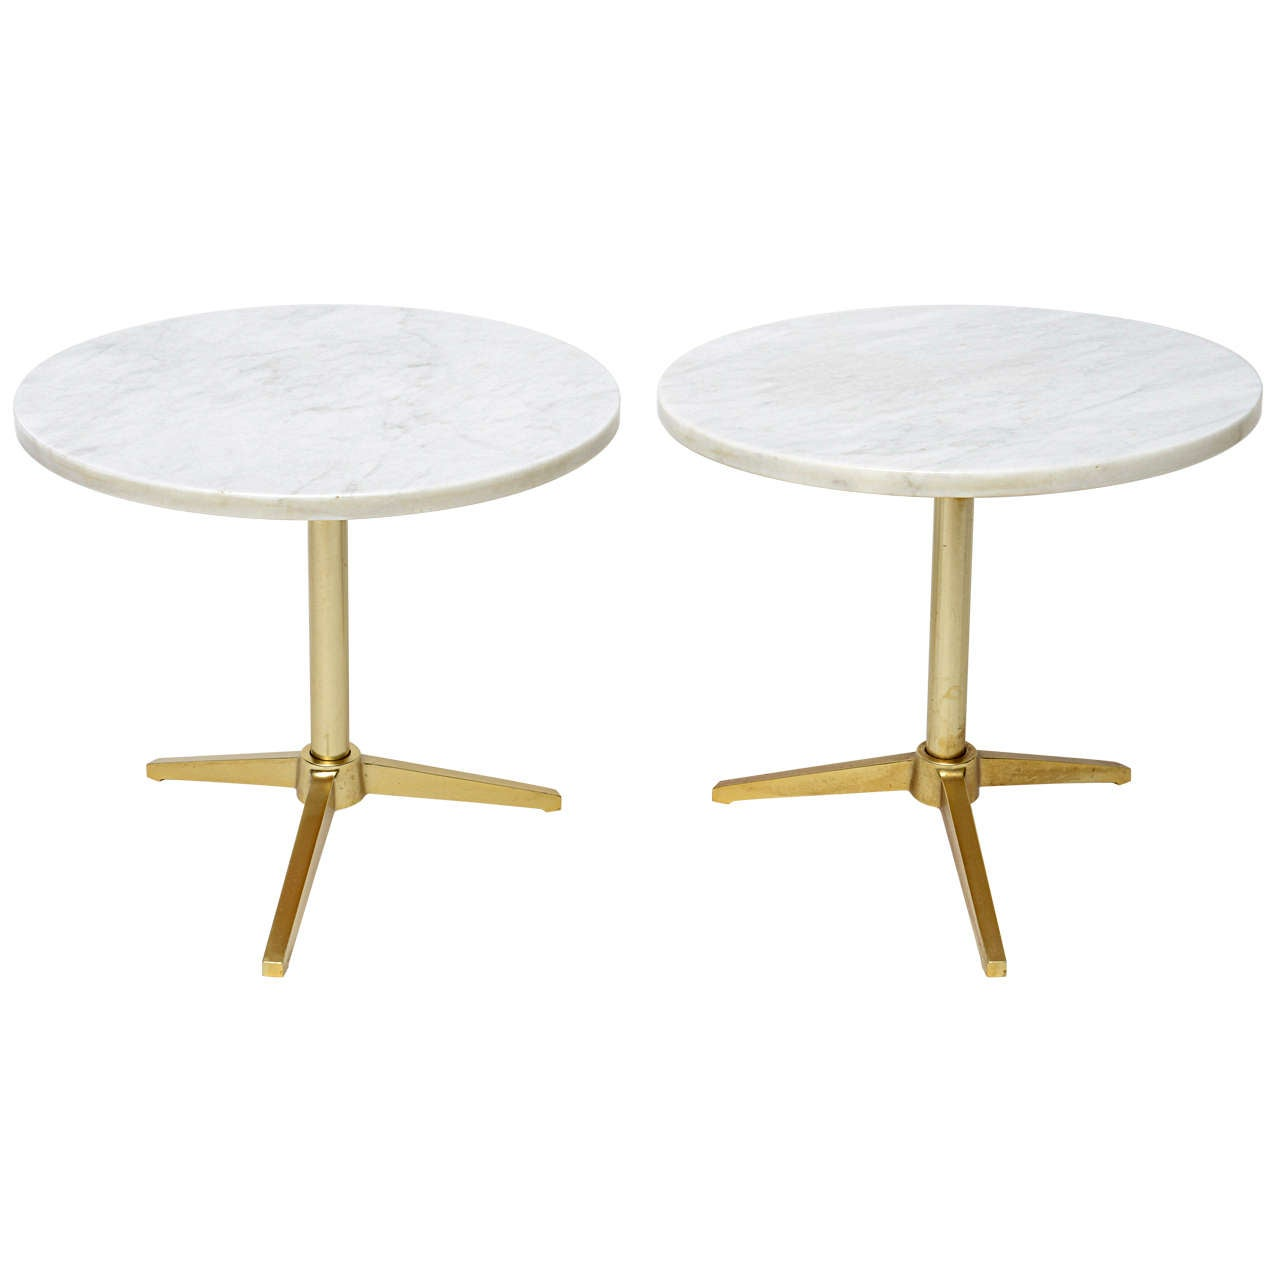 1960s Stellar Italian Marble Top Brass Base Side Tables At 1stdibs